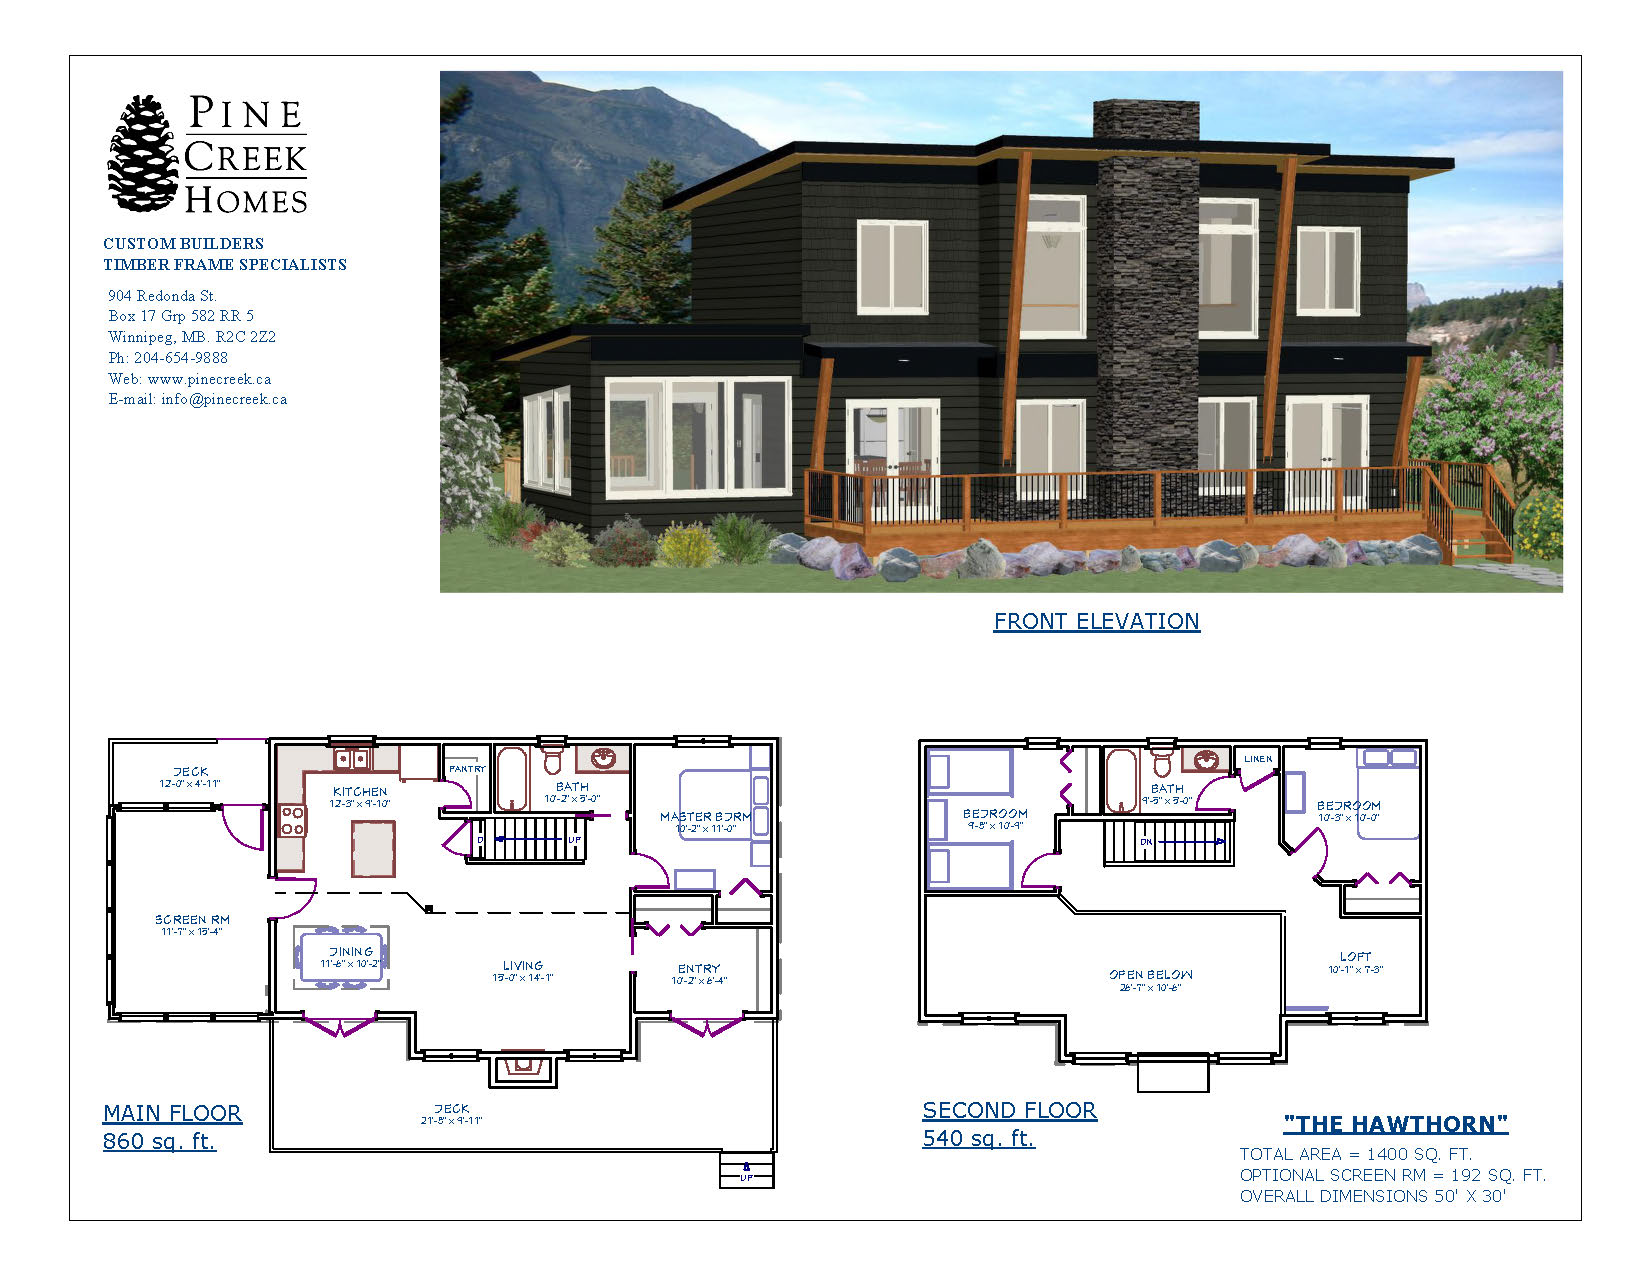 Hawthorn pine creek homes for Cost to build a 1400 sq ft house